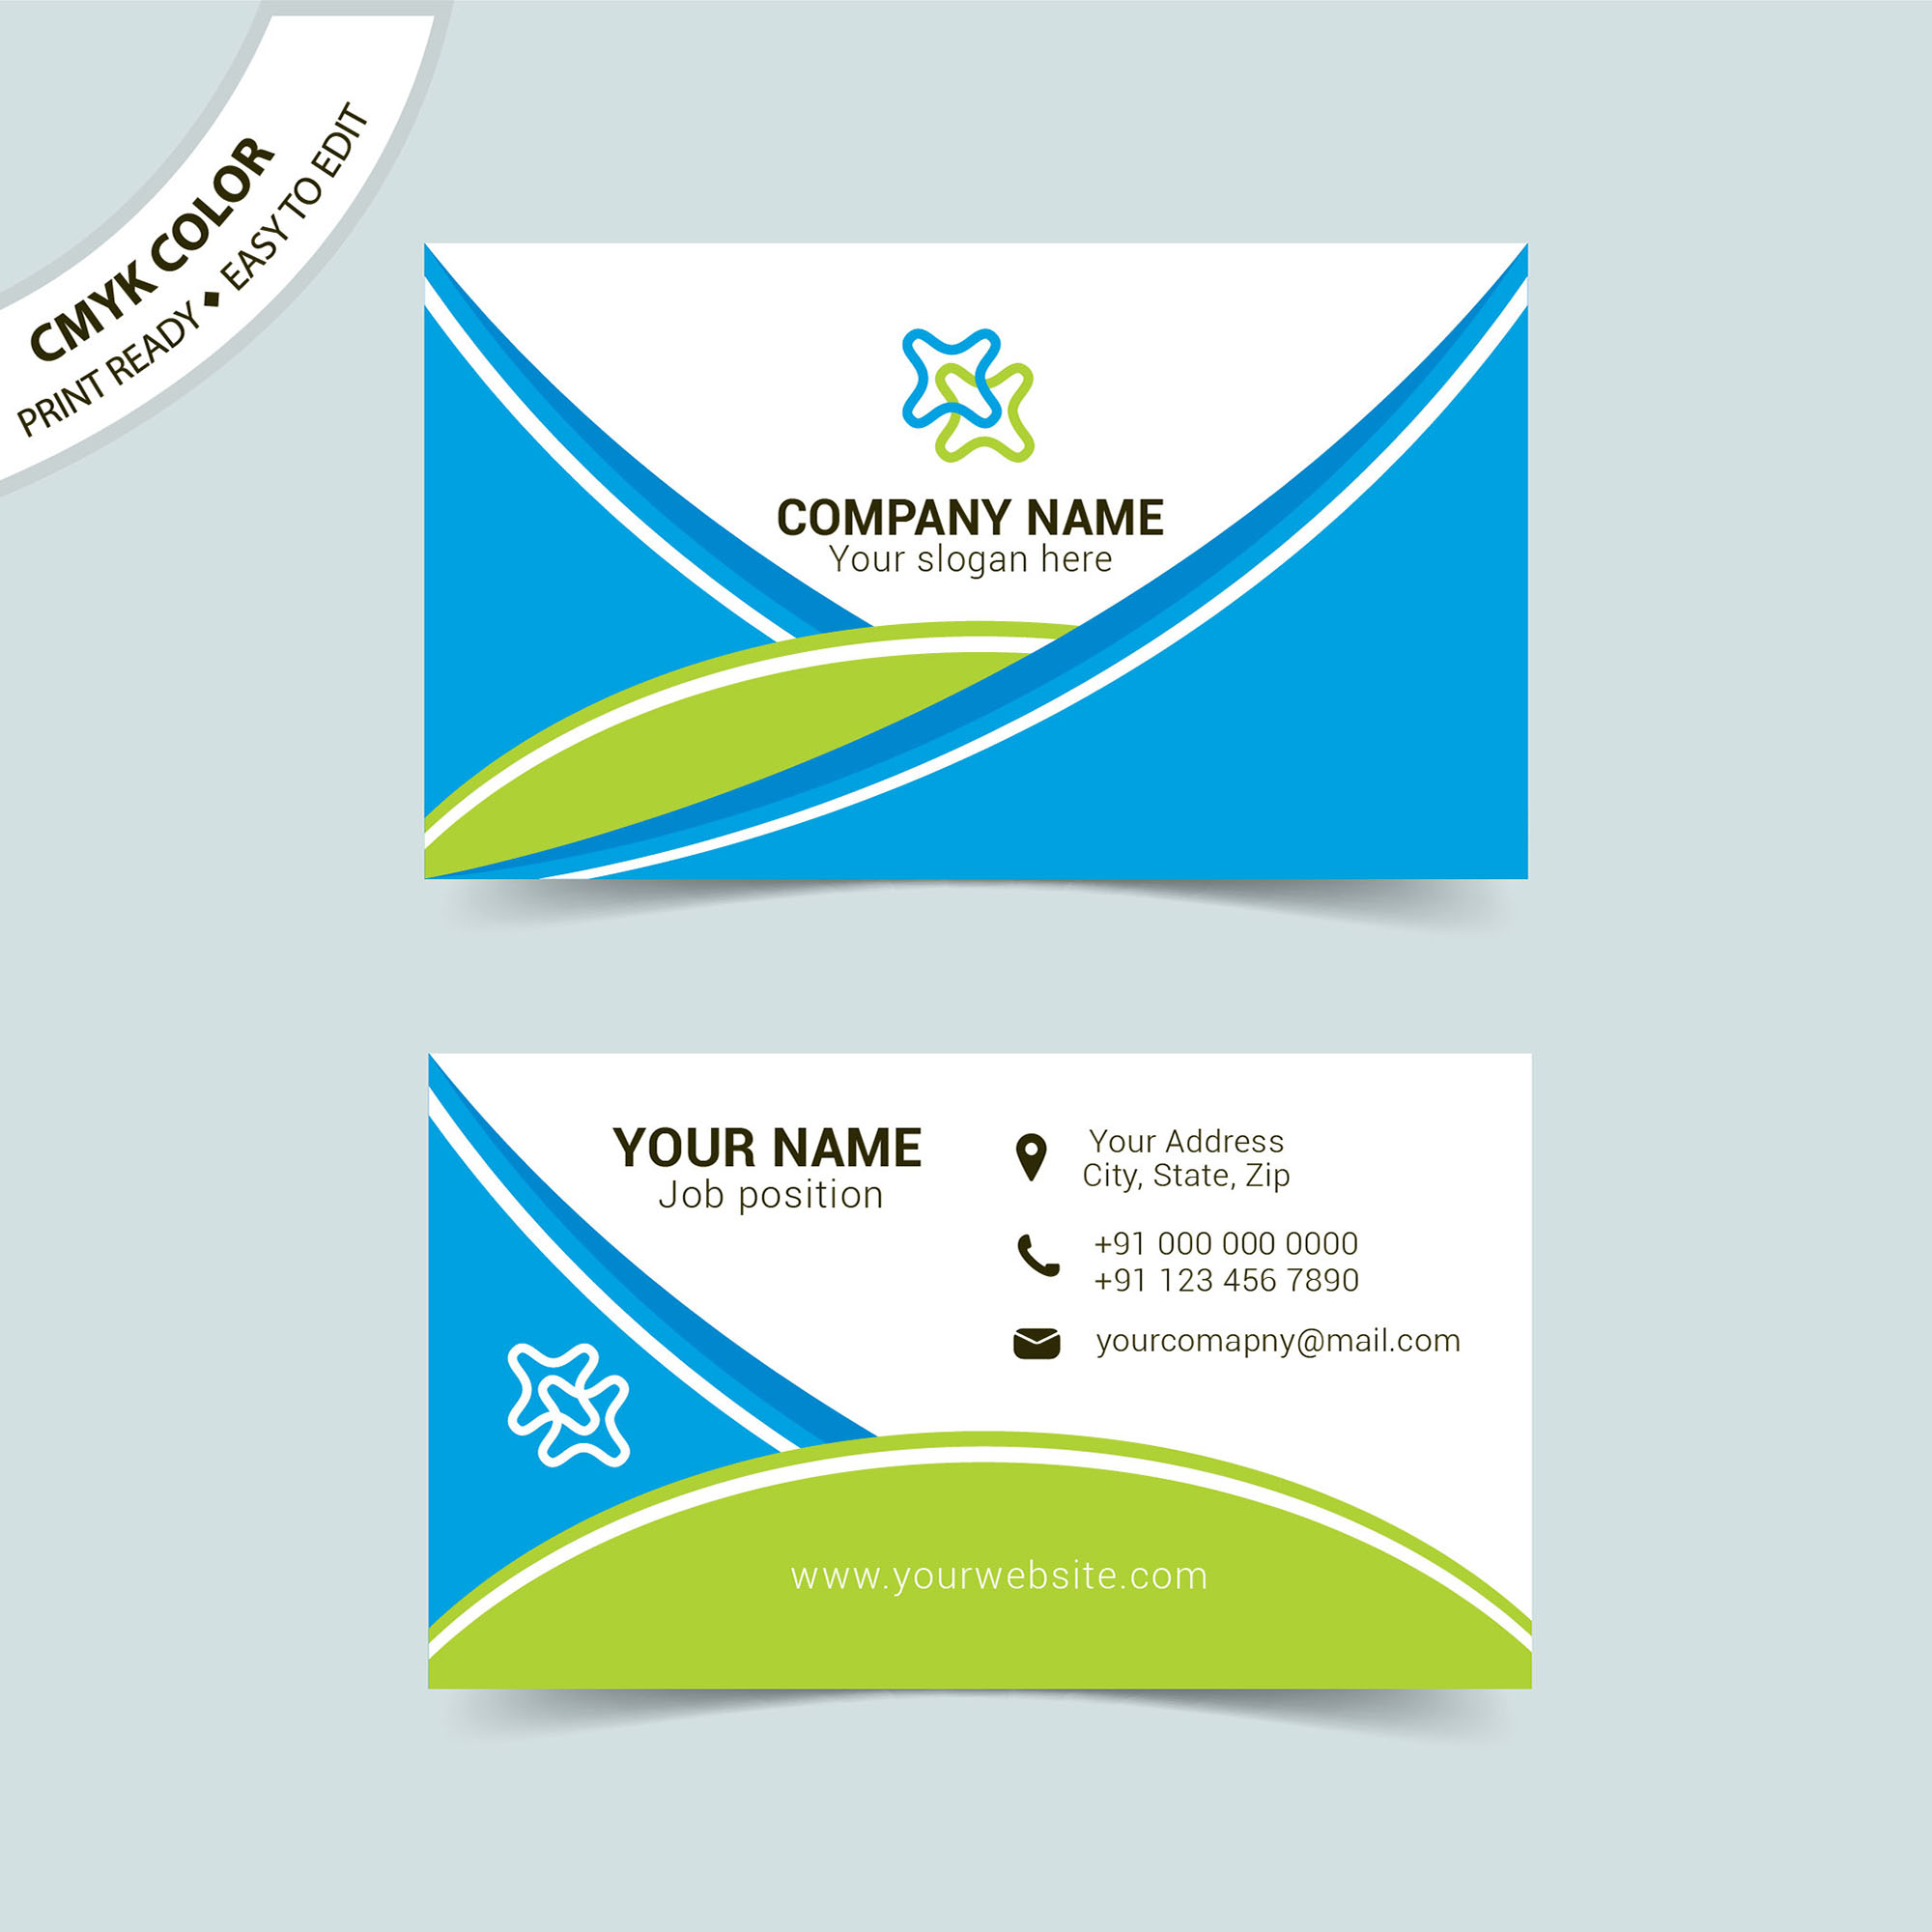 Creative business card vector template free download wisxi business card business cards business card design business card template design templates cheaphphosting Gallery